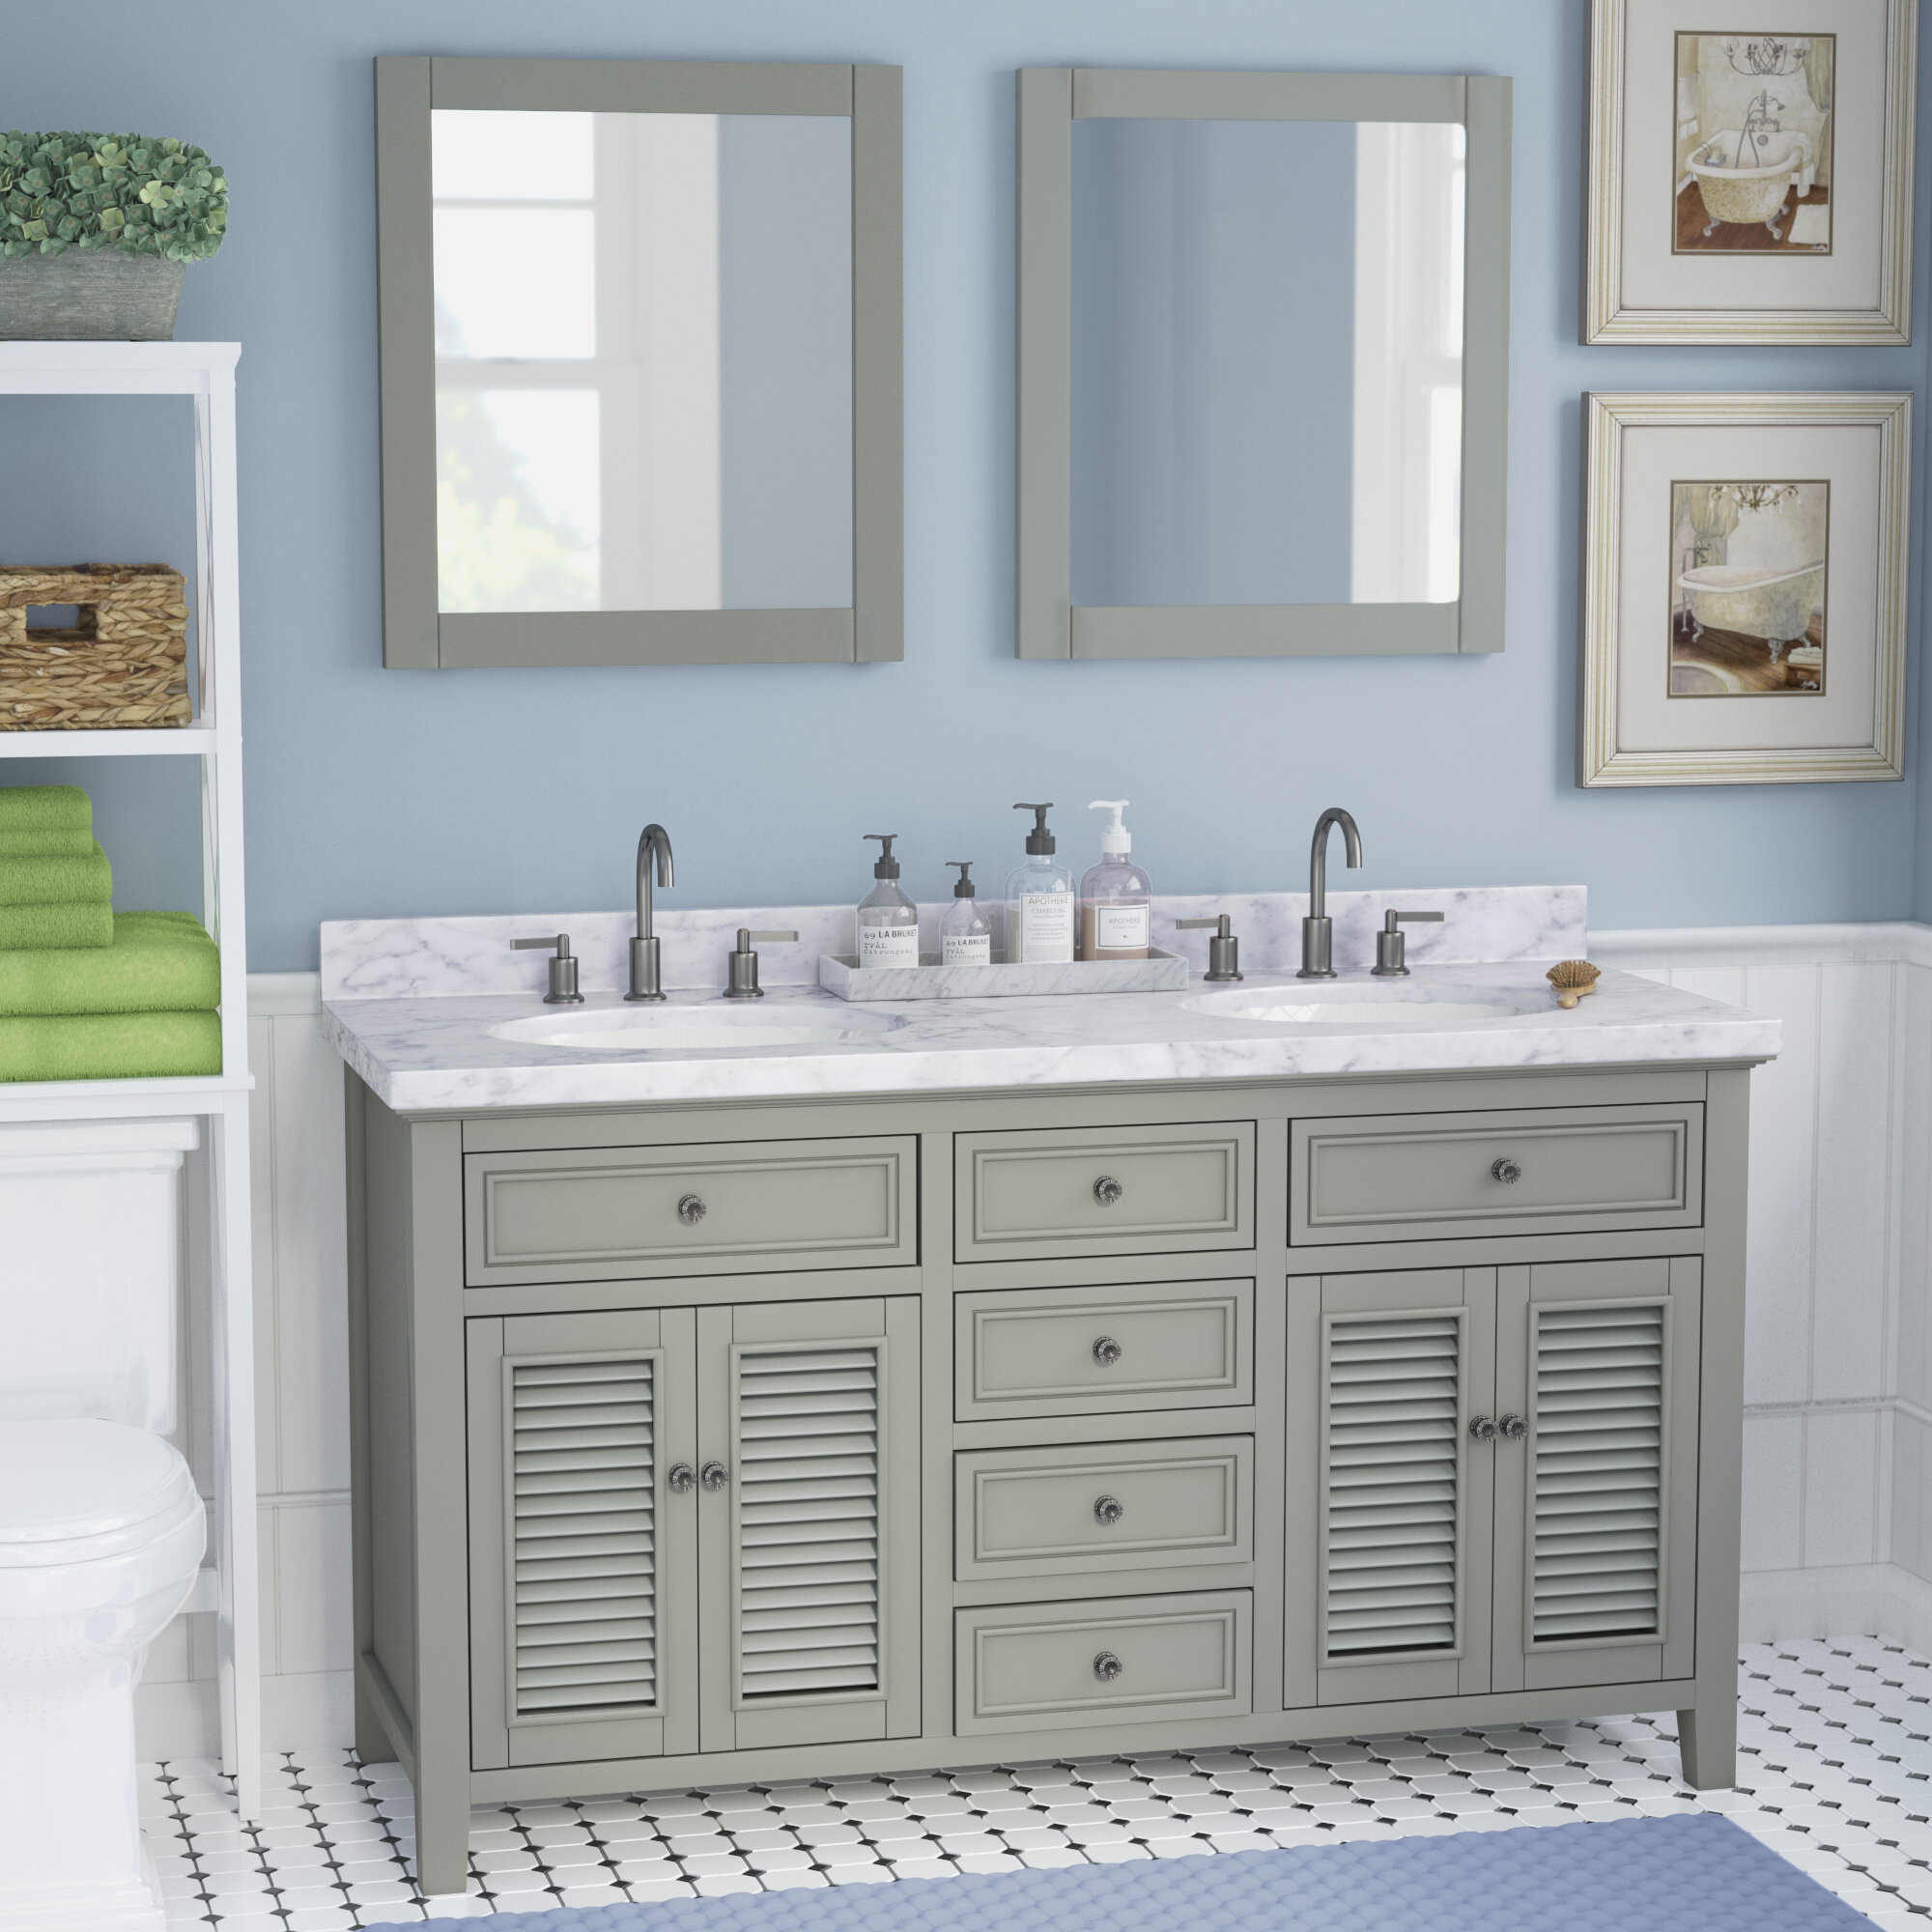 "Laurel Foundry Modern Farmhouse Braselton Solid Wood 61"" Double Bathroom Vanity Set with Mirror 